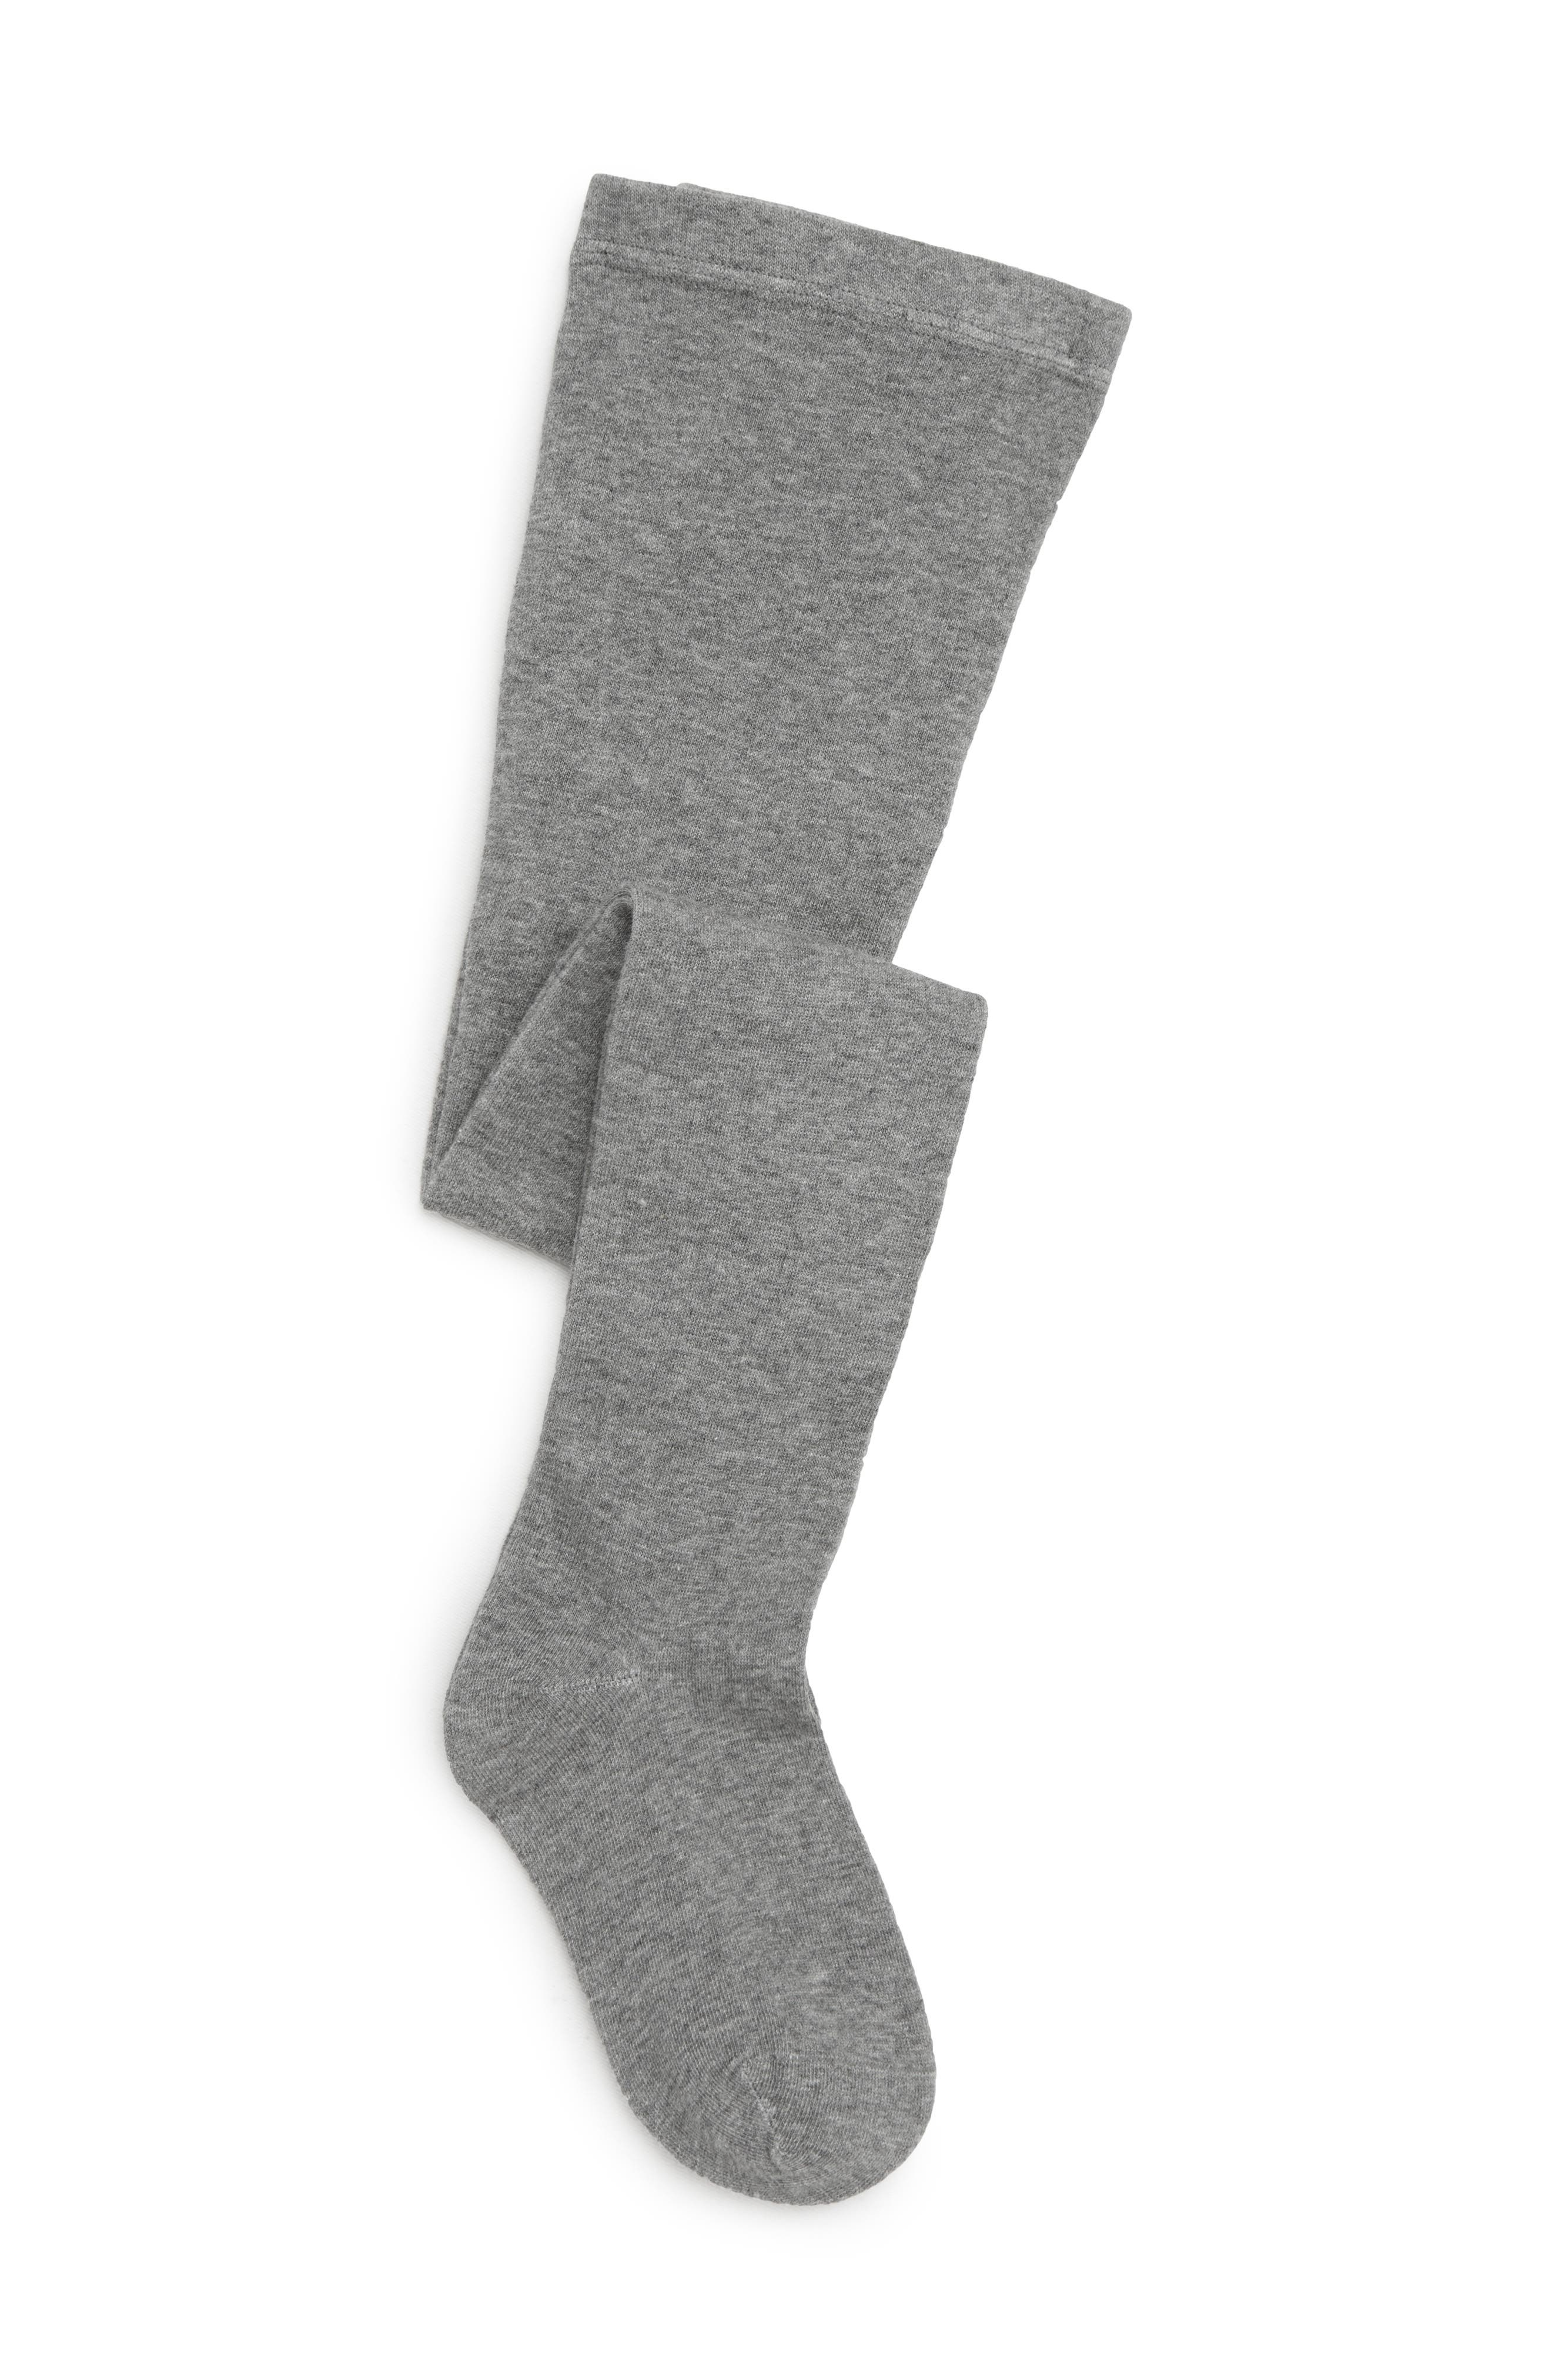 TUCKER + TATE,                             Nordstrom Sweater Tights,                             Main thumbnail 1, color,                             030